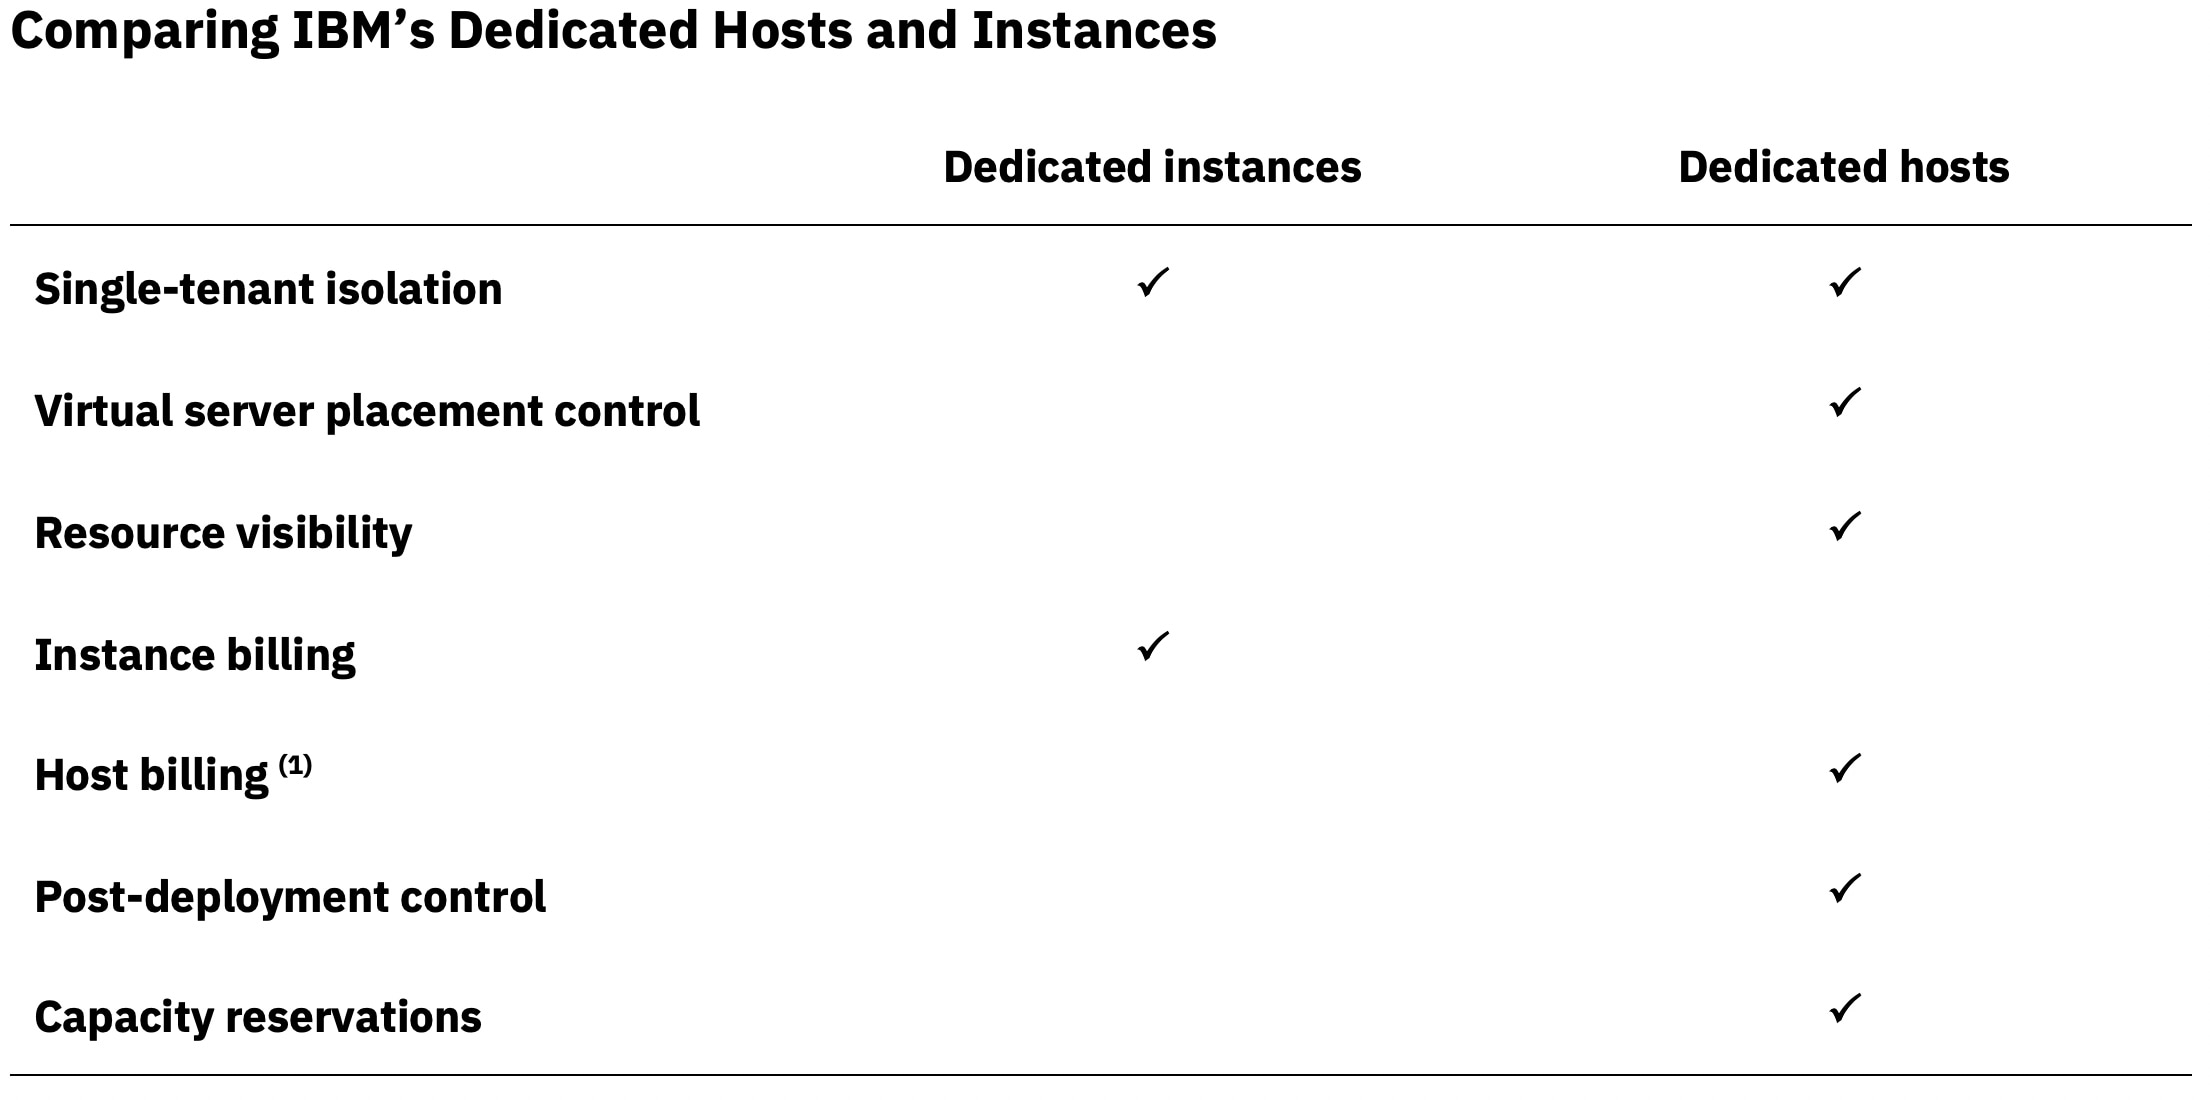 Comparing IBM's Dedicated Hosts and Instances